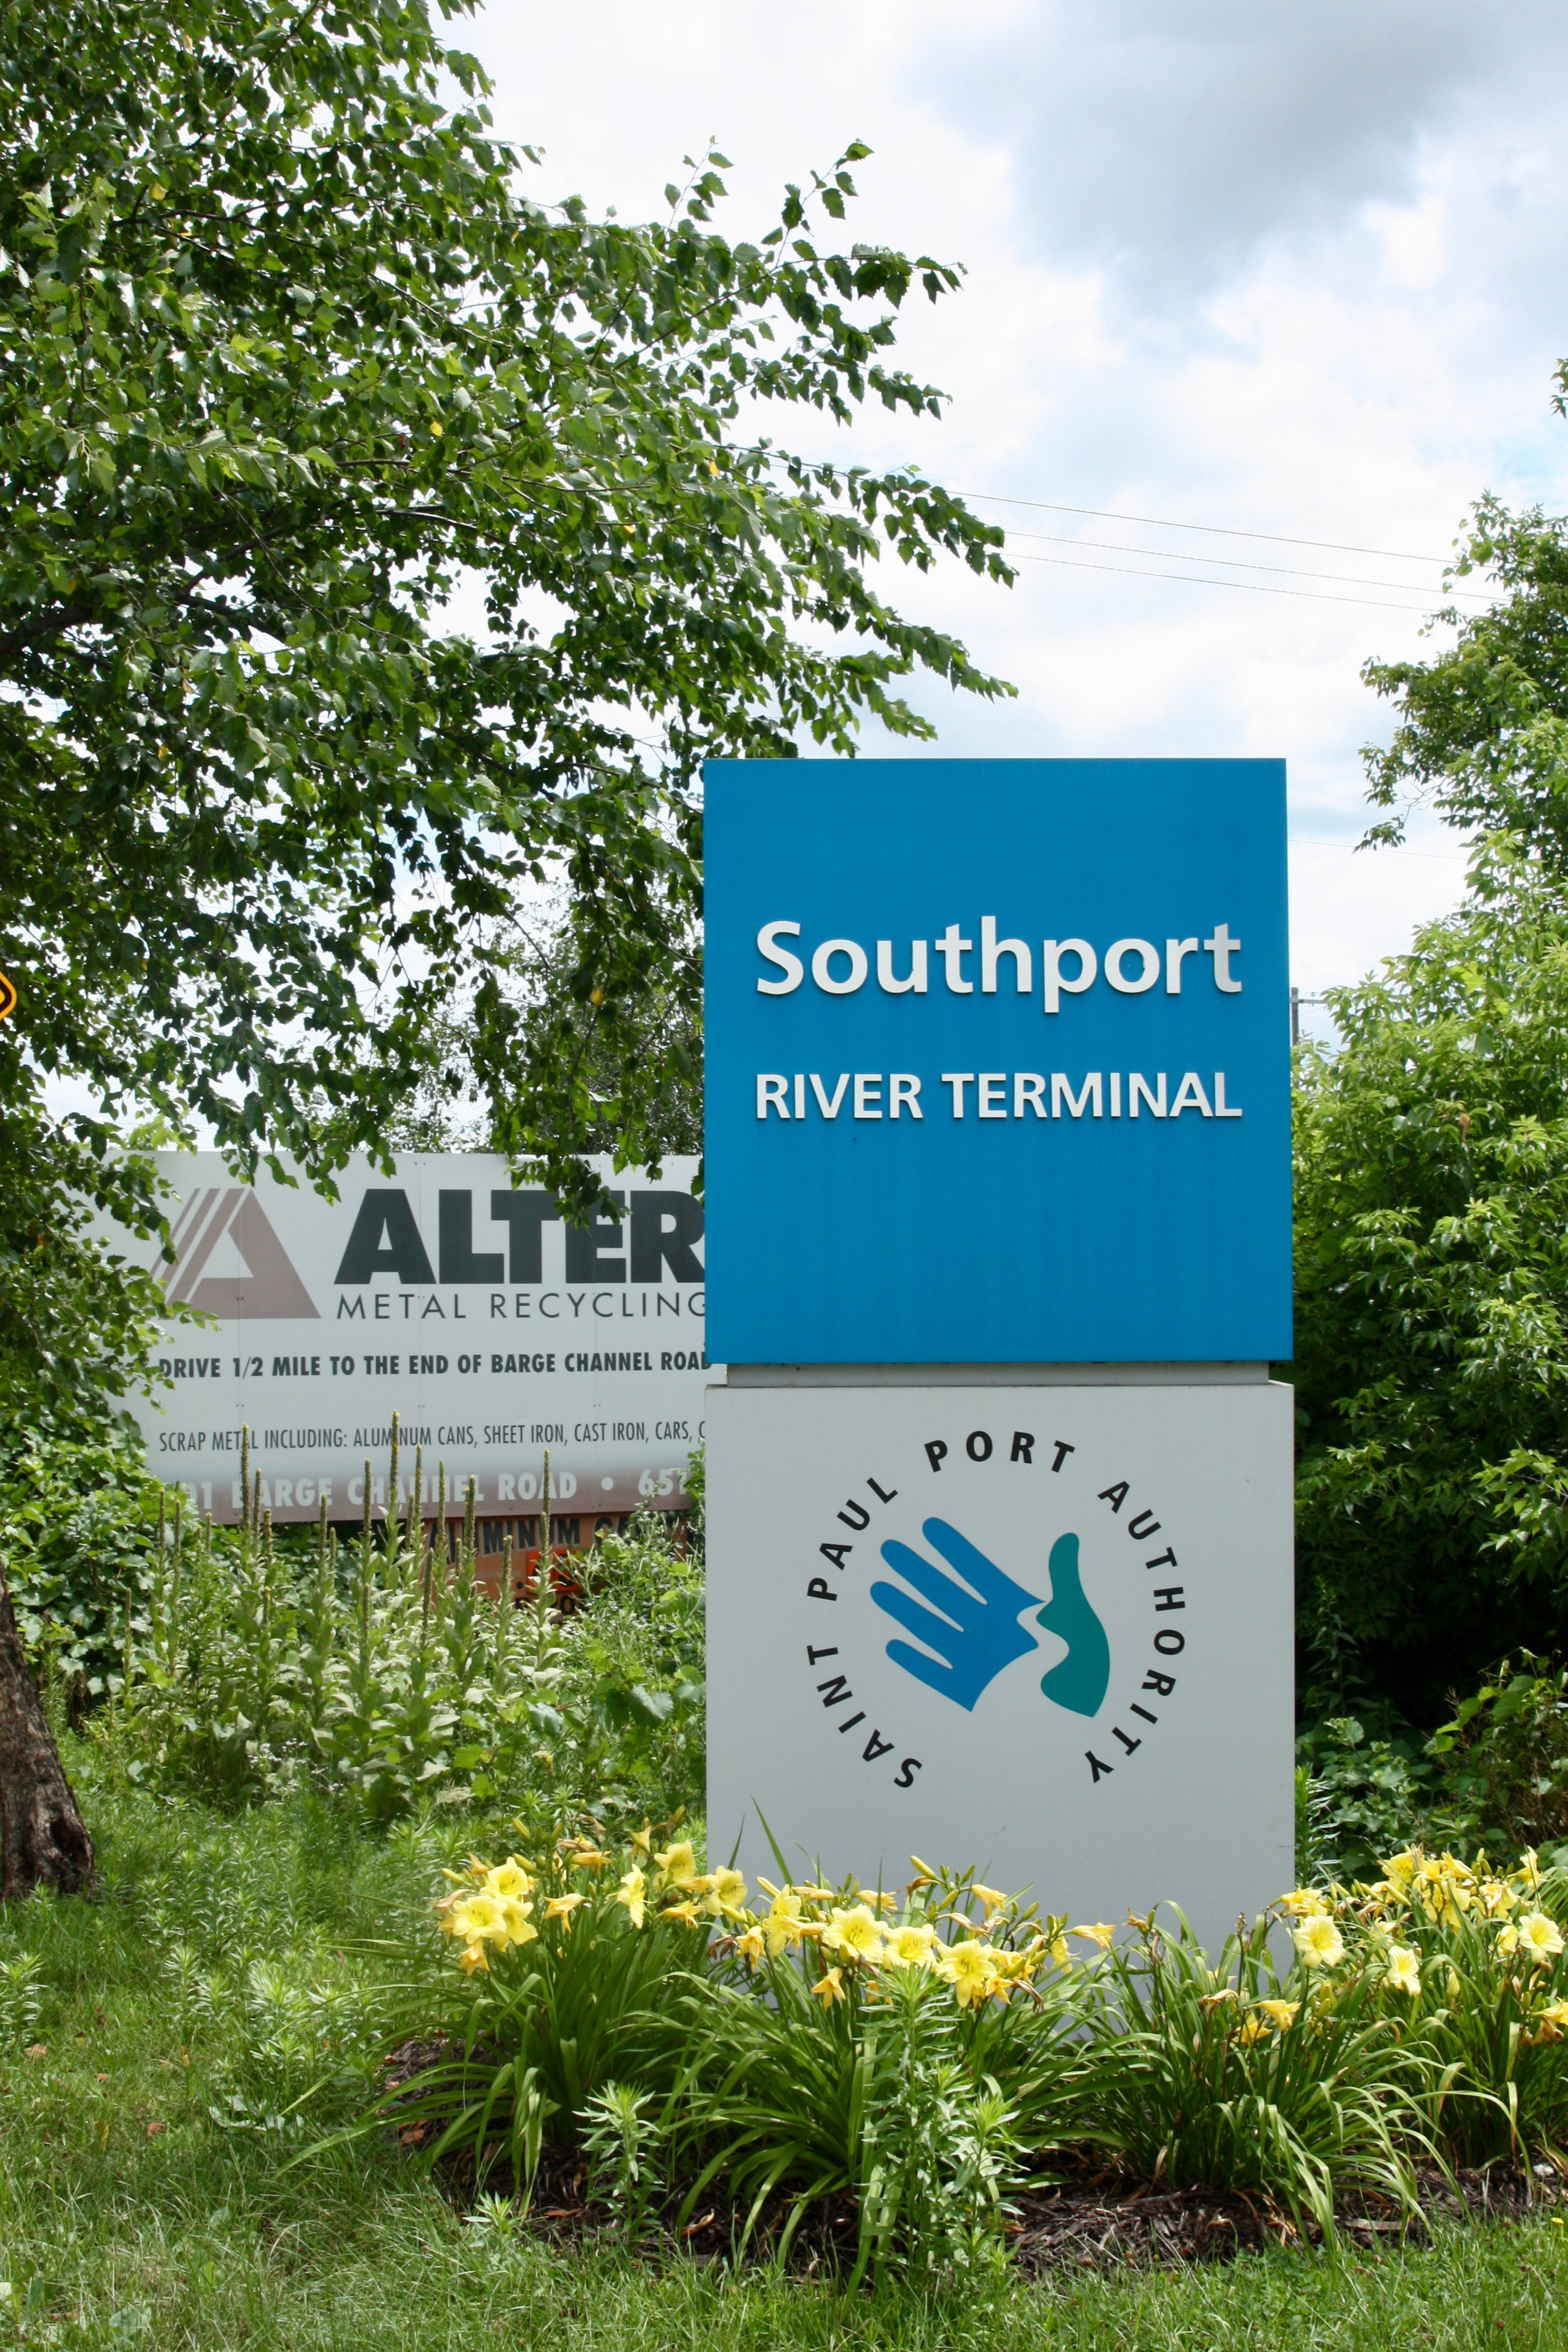 Southport River Terminal IMG_7983